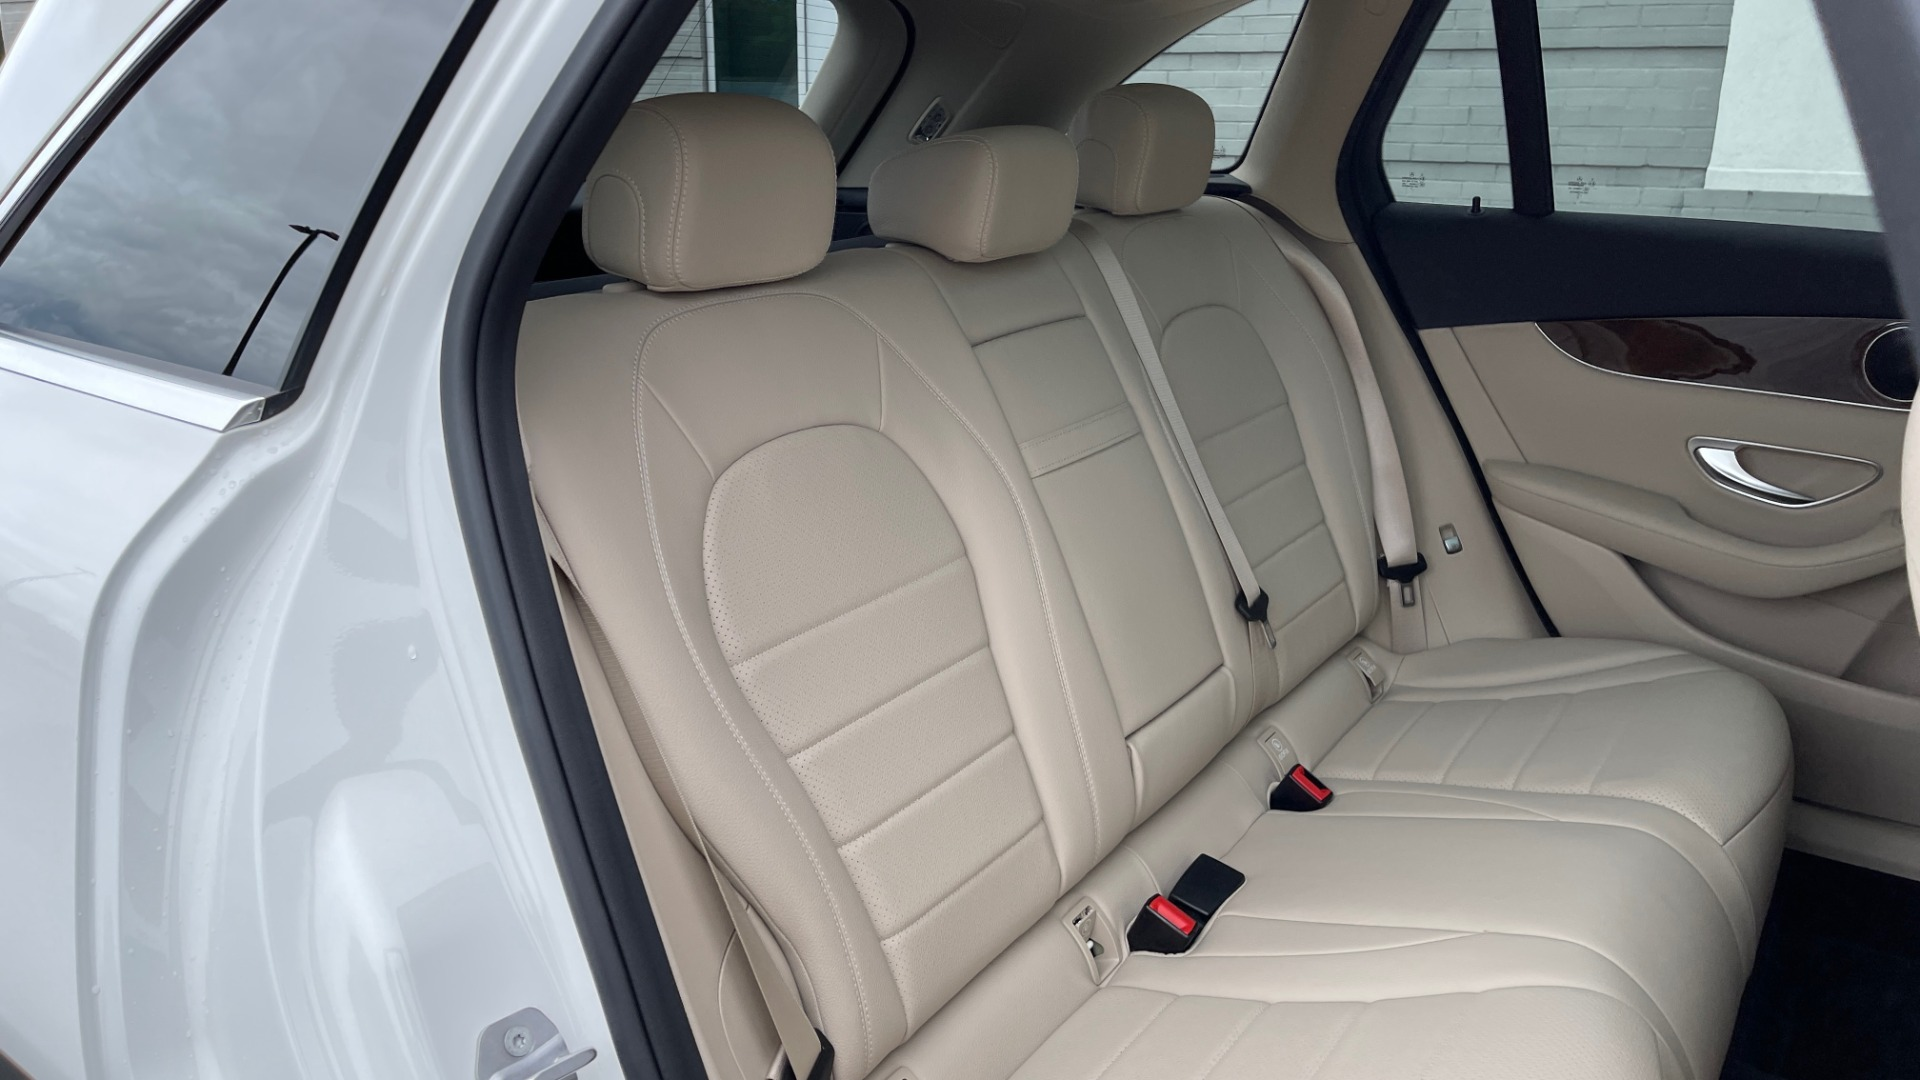 Used 2018 Mercedes-Benz GLC 300 PREMIUM / PANO-ROOF / HTD STS / PARK ASST / REARVIEW for sale $34,613 at Formula Imports in Charlotte NC 28227 53